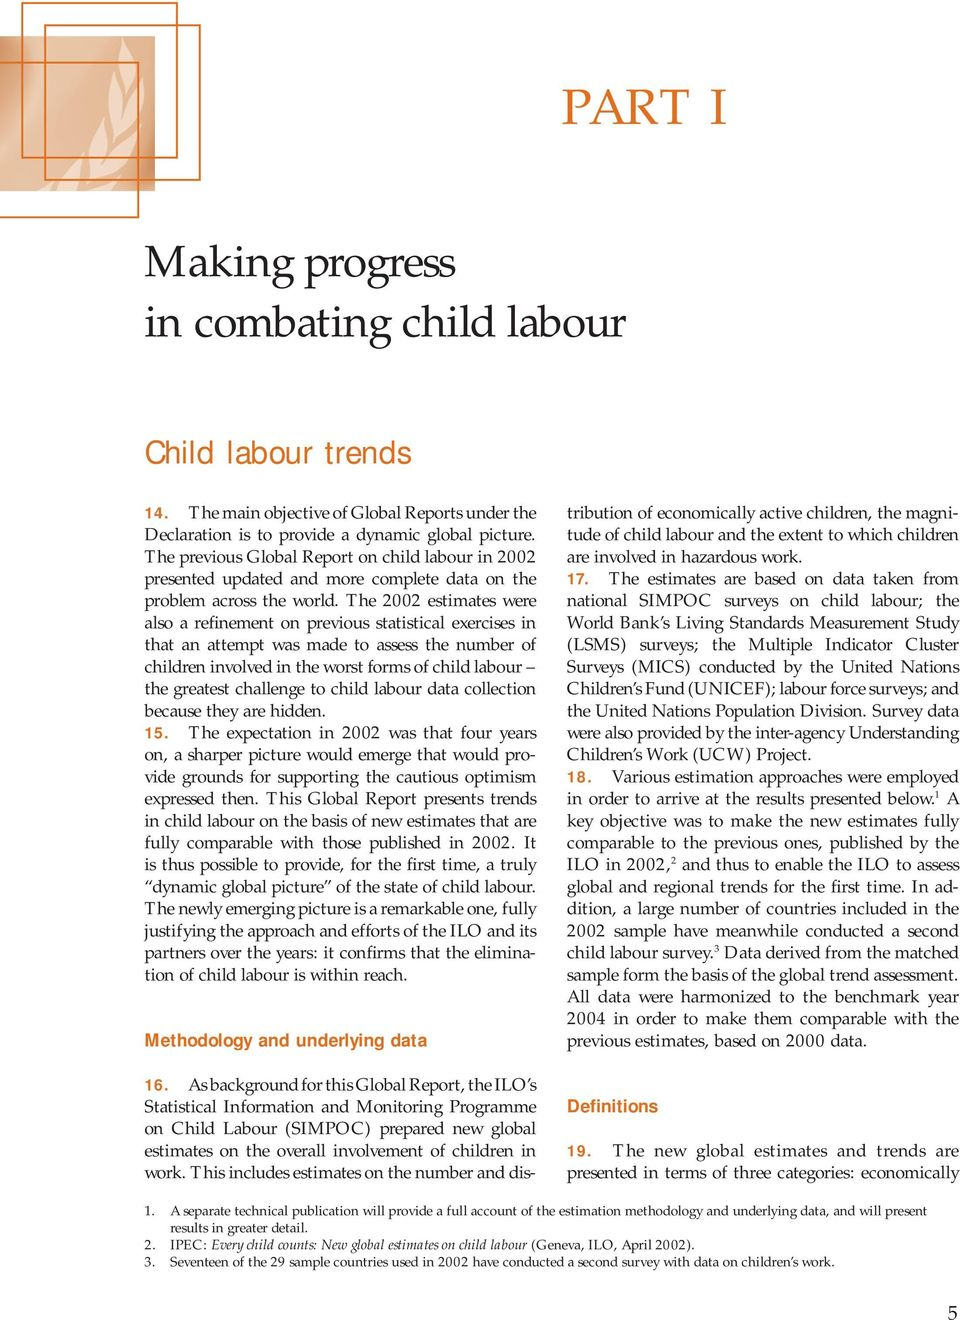 The 2002 estimates were also a refinement on previous statistical exercises in that an attempt was made to assess the number of children involved in the worst forms of child labour the greatest